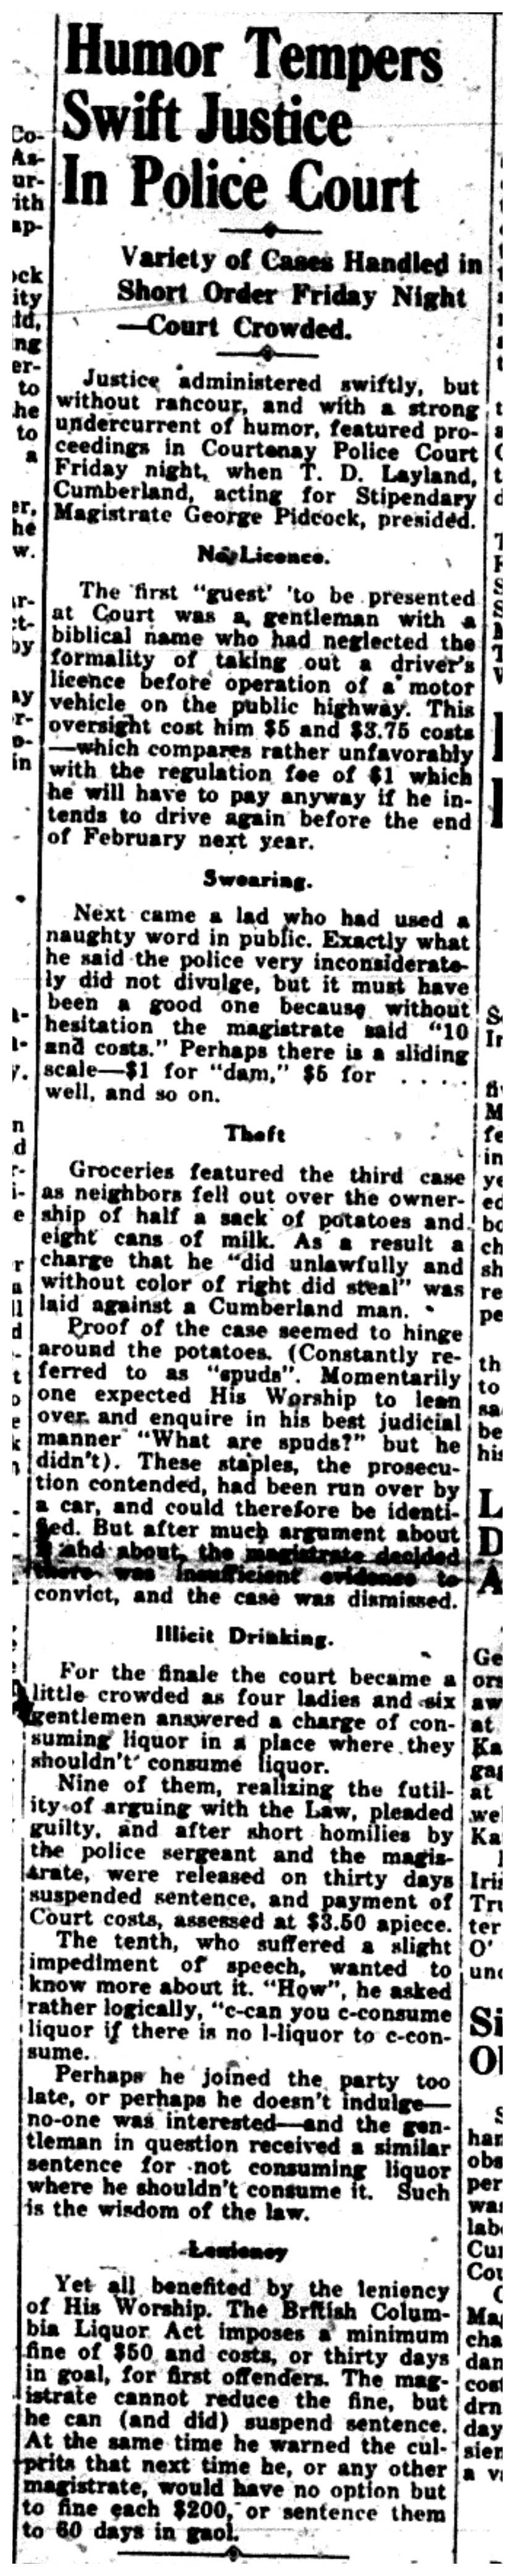 Humor in Court Aug 12, 1937